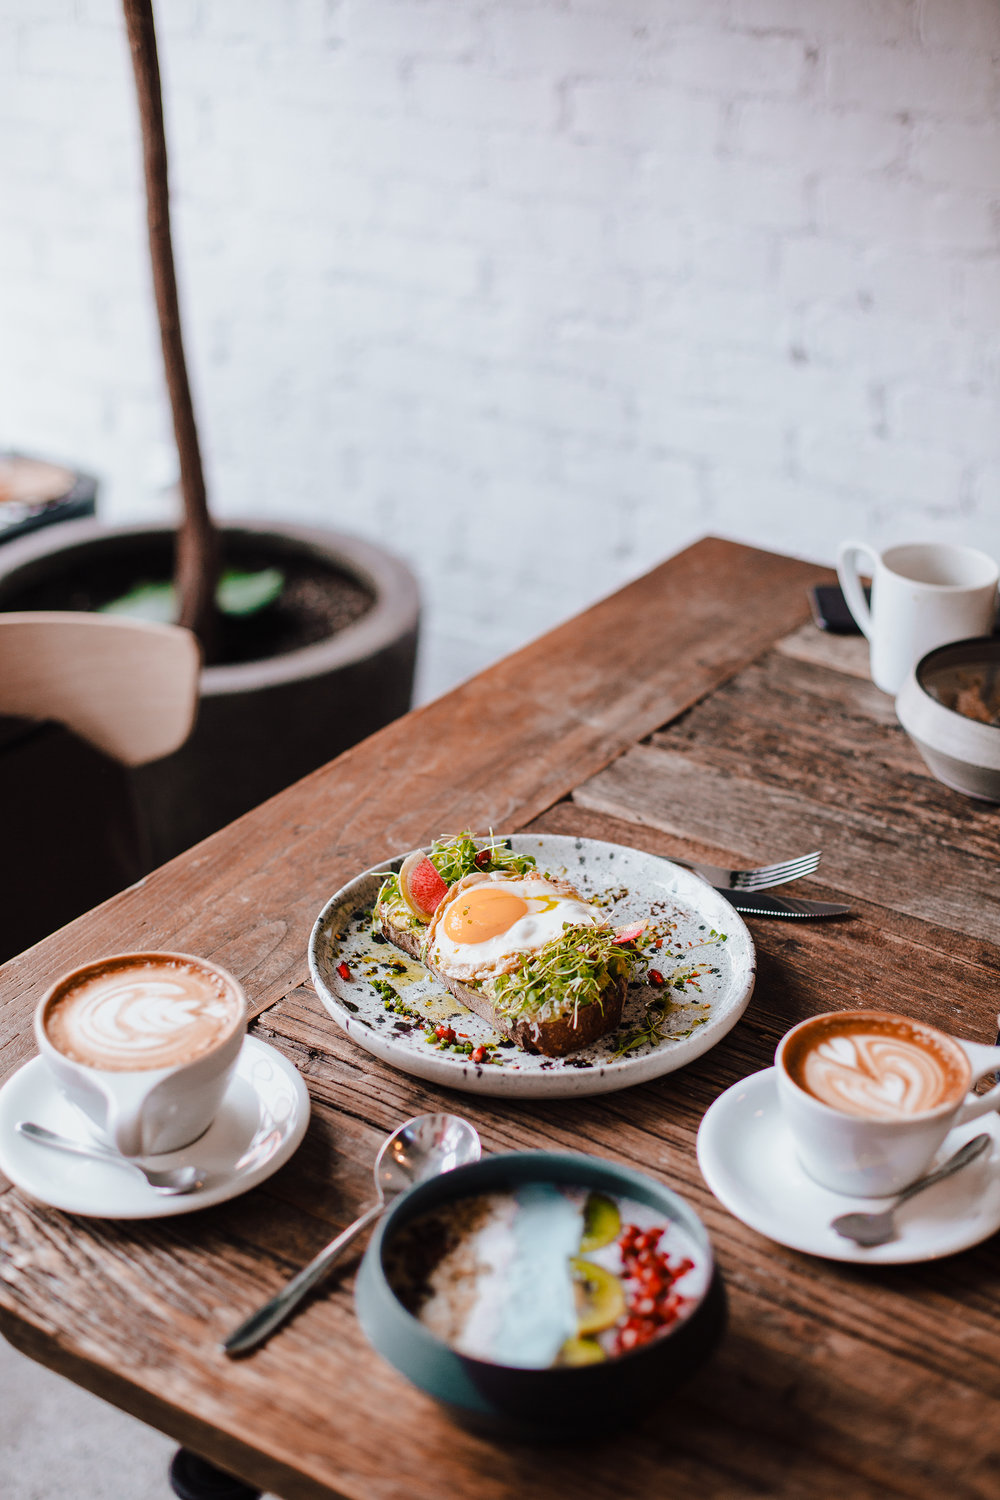 Chia pudding//latte and cappuccino//avocado on toast